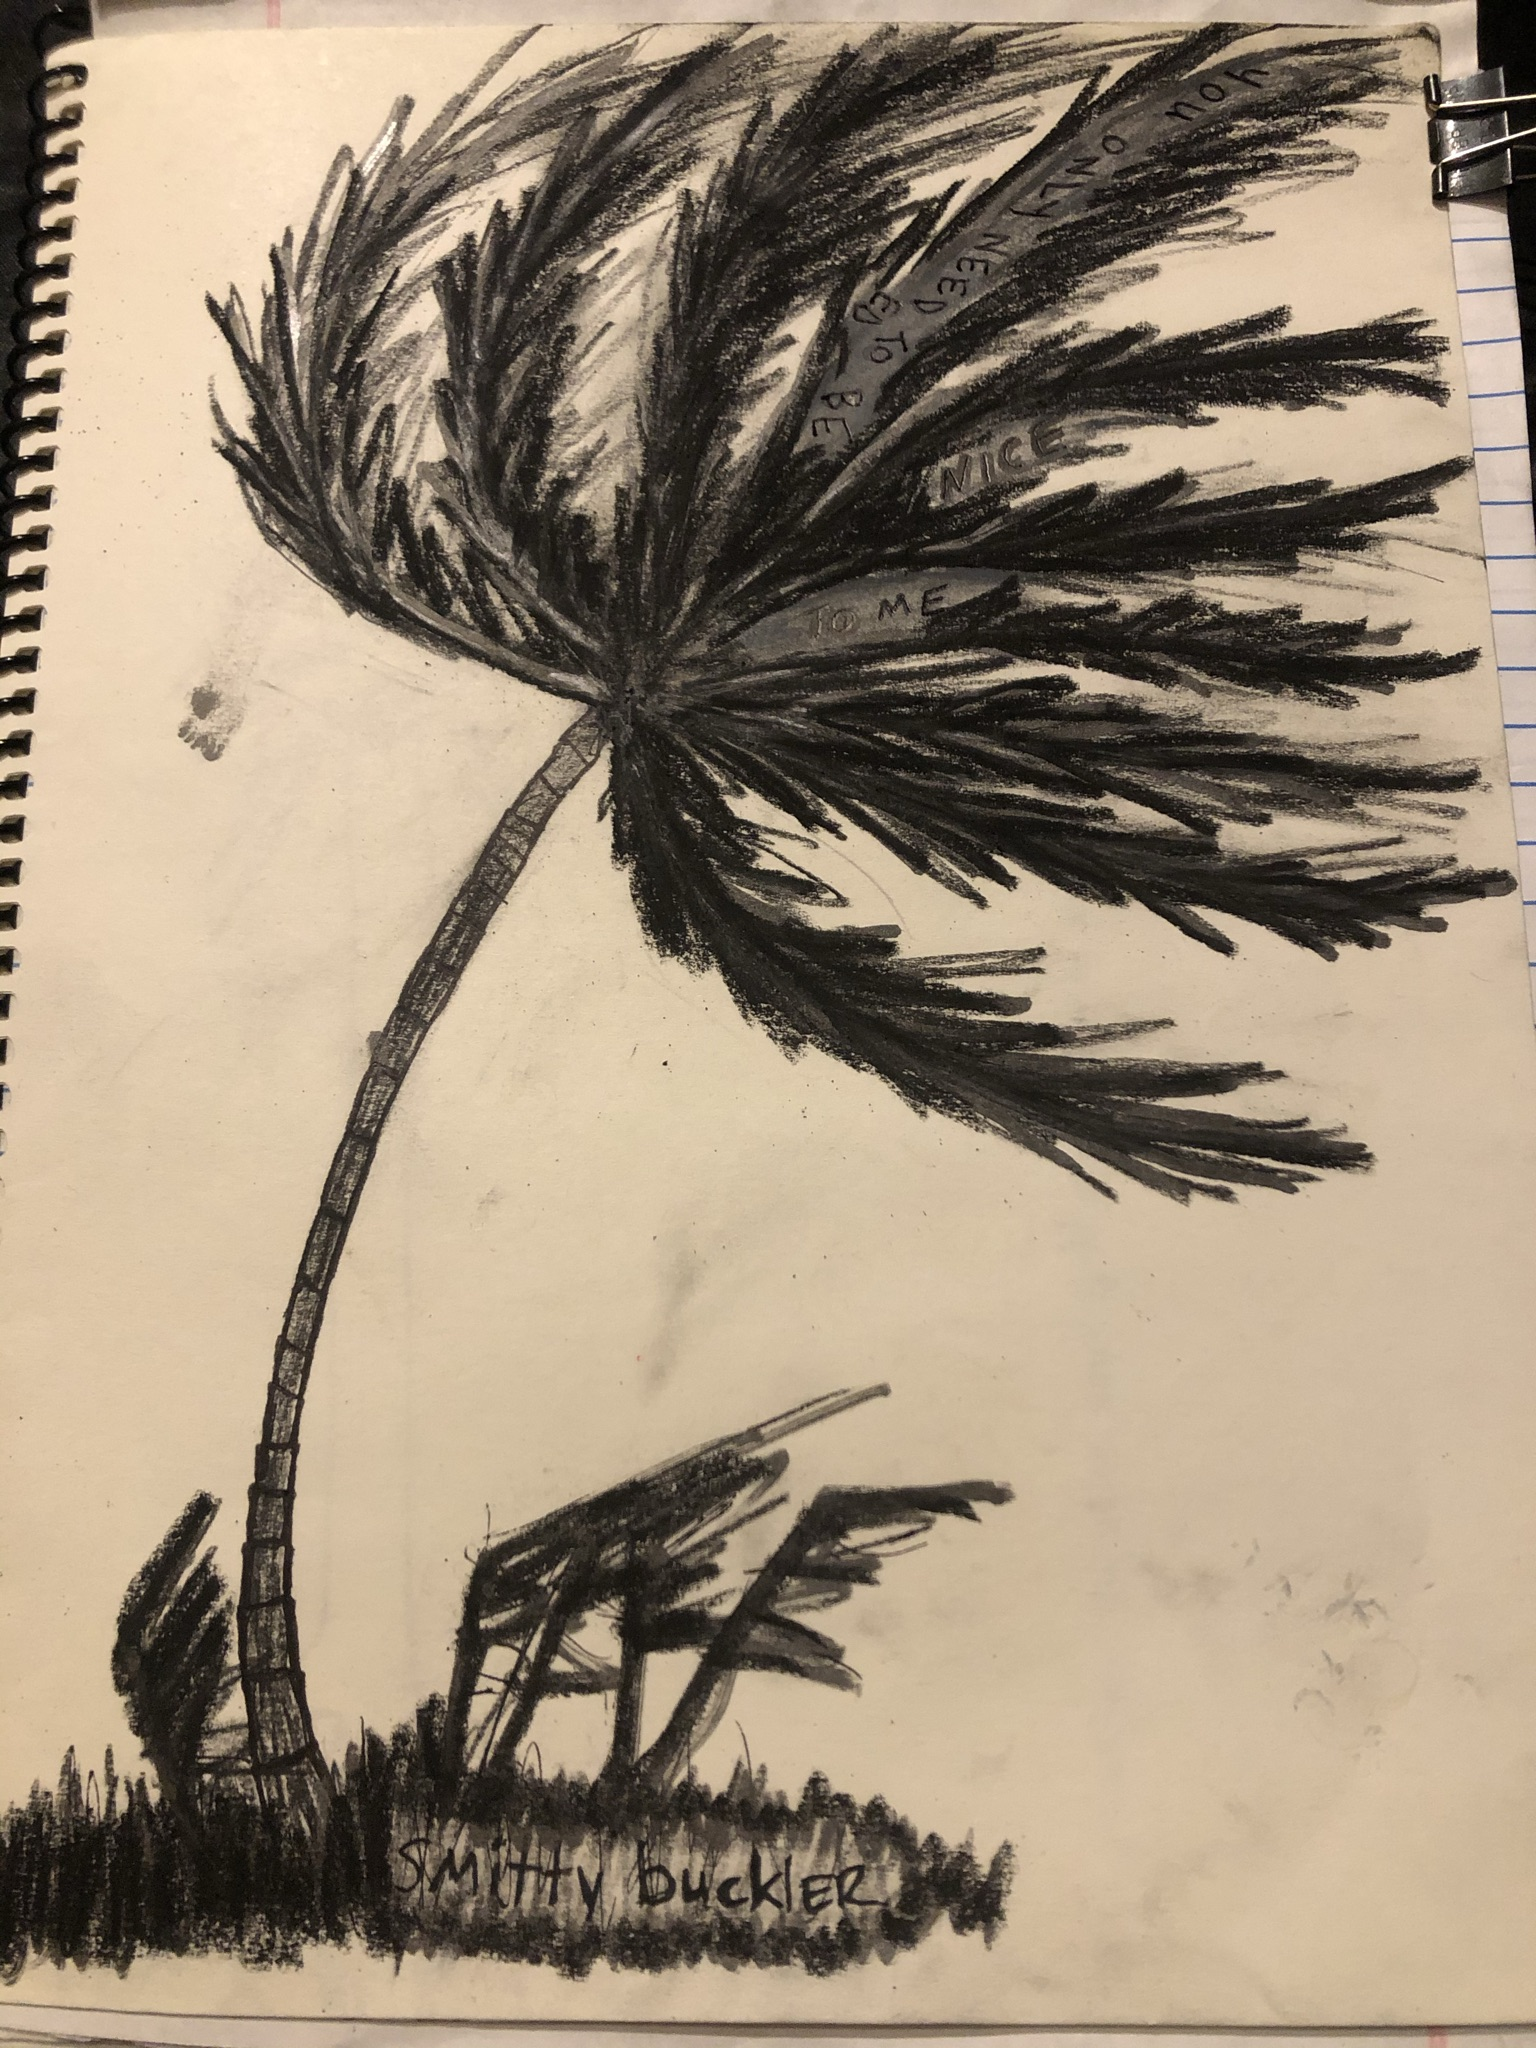 multimedia drawing of a palm tree blowing in the wind with words in the leaves